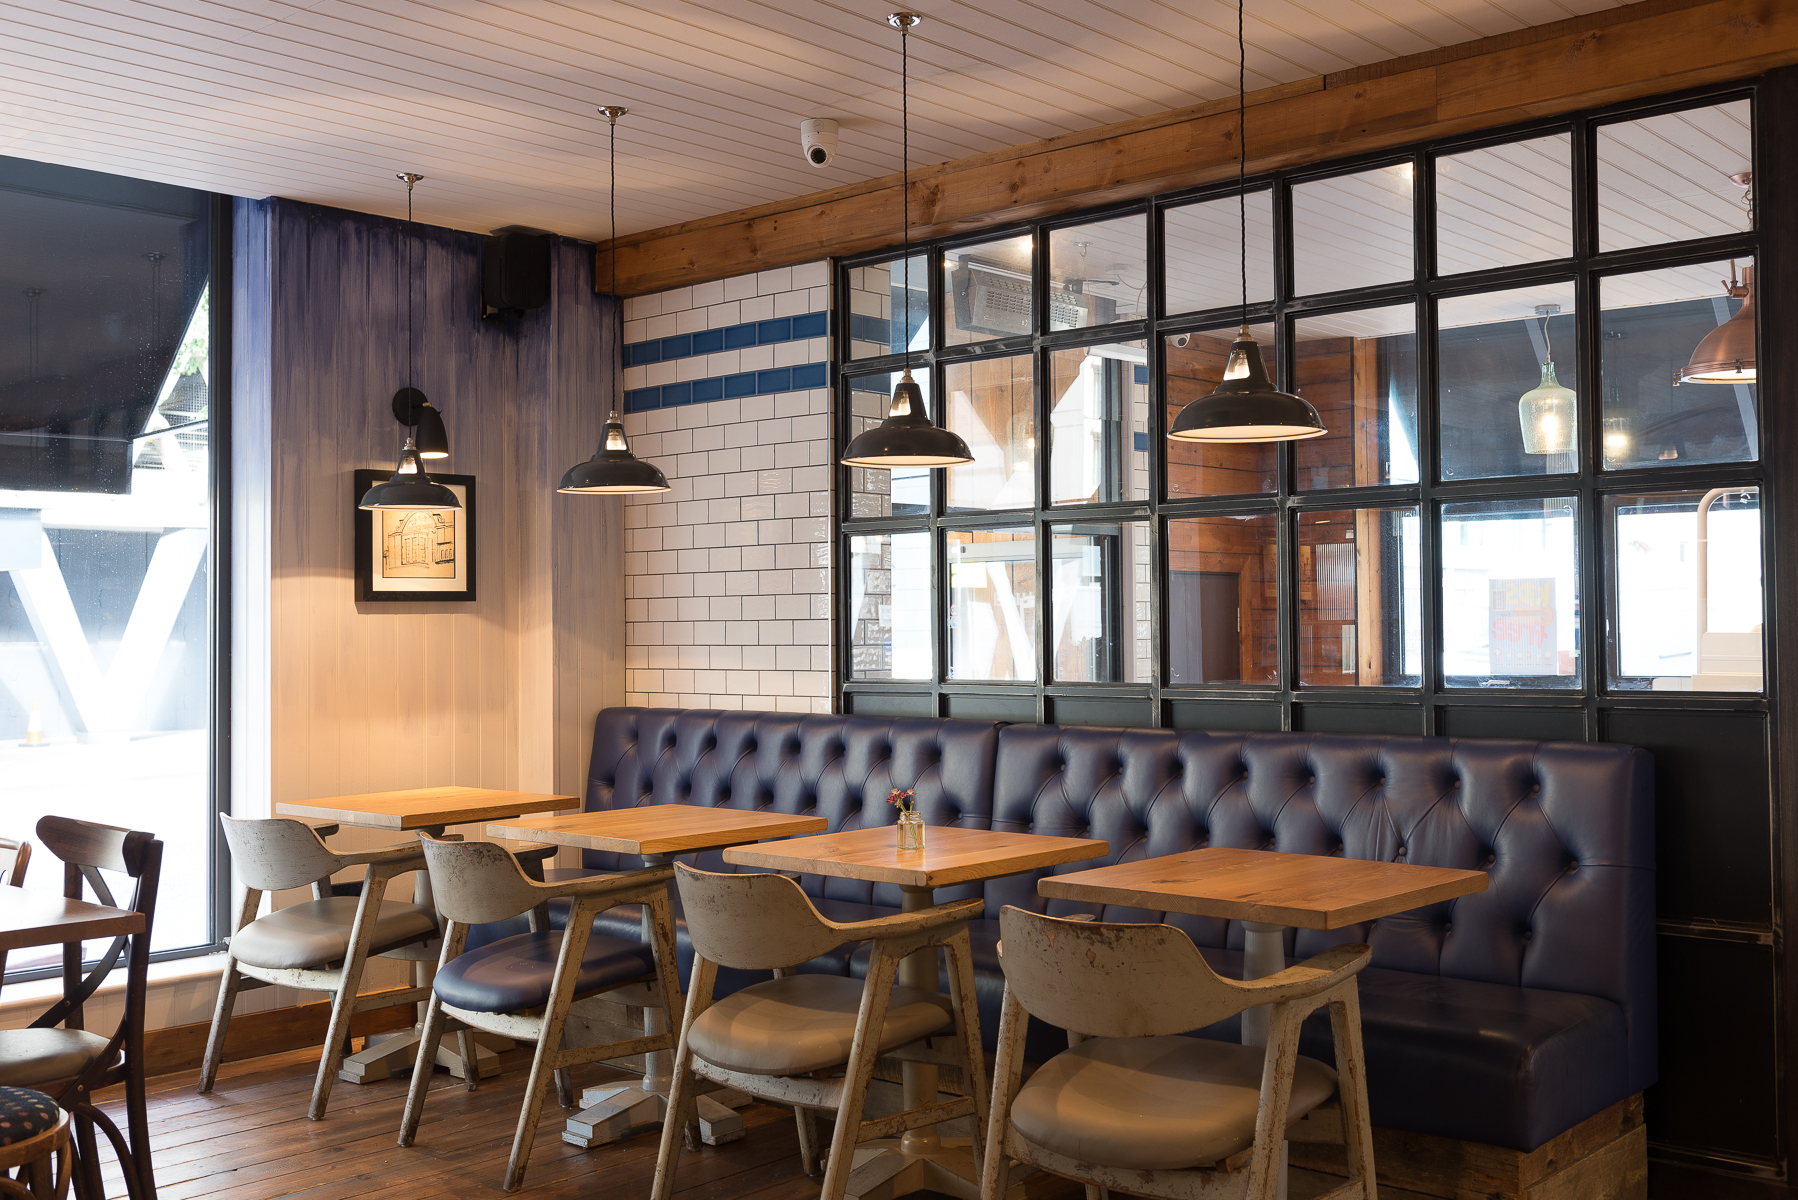 Dark Grey Coolicon Pendant Lights in Bristol Restaurant